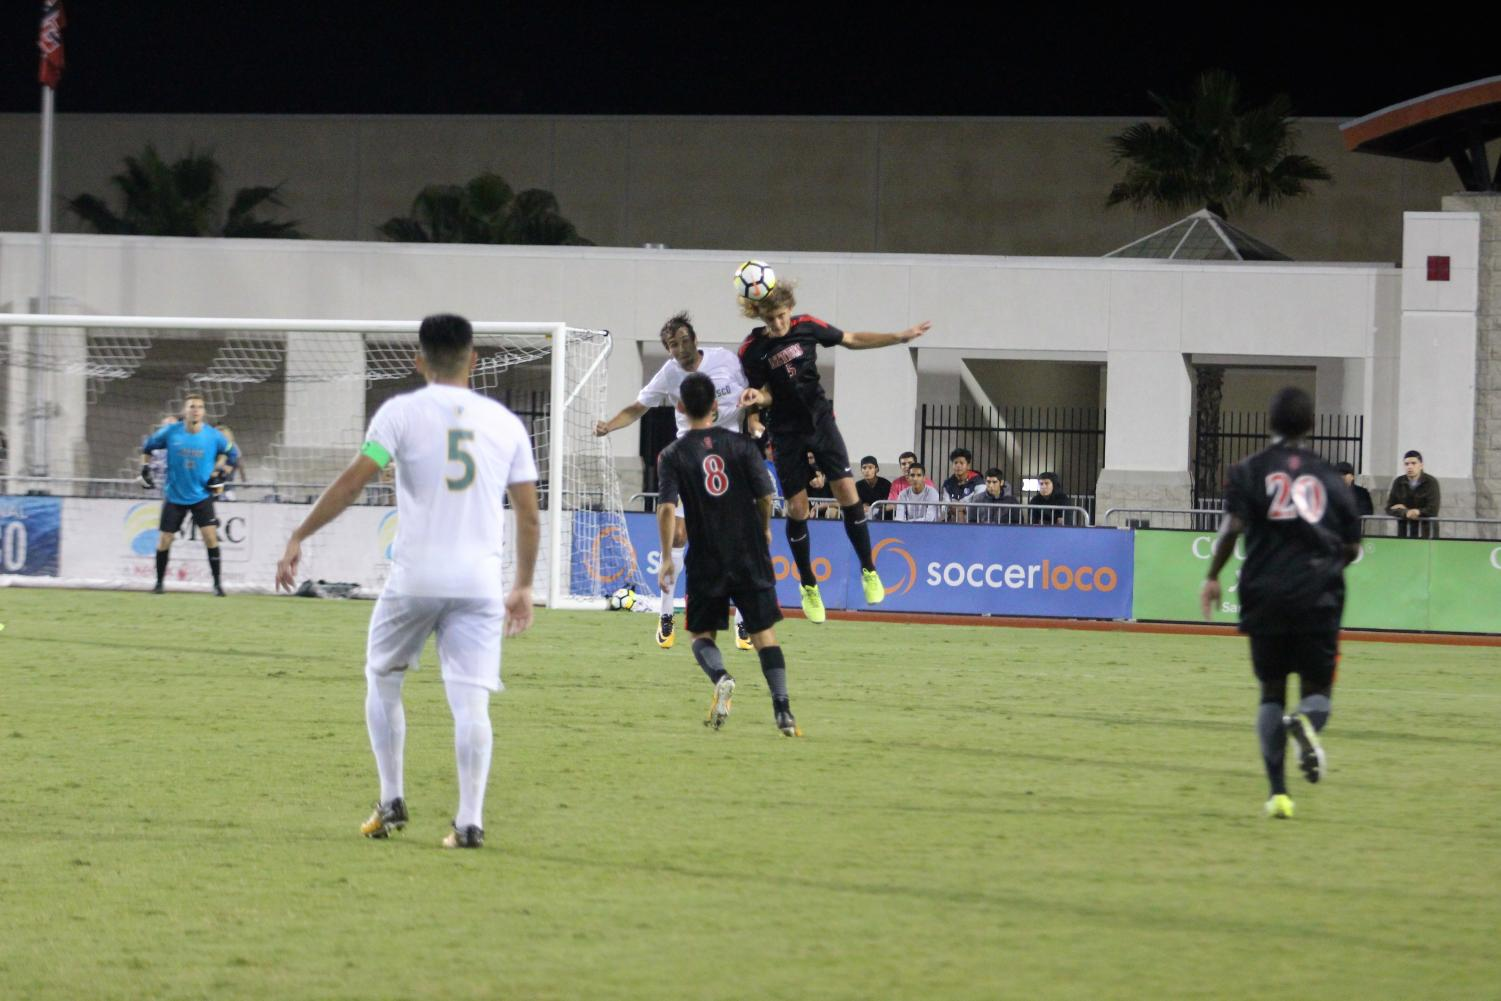 Junior defender Kyle Adams  competes for a header against the University of San Francisco on Sept. 8. The Aztecs lost the match 2-1.